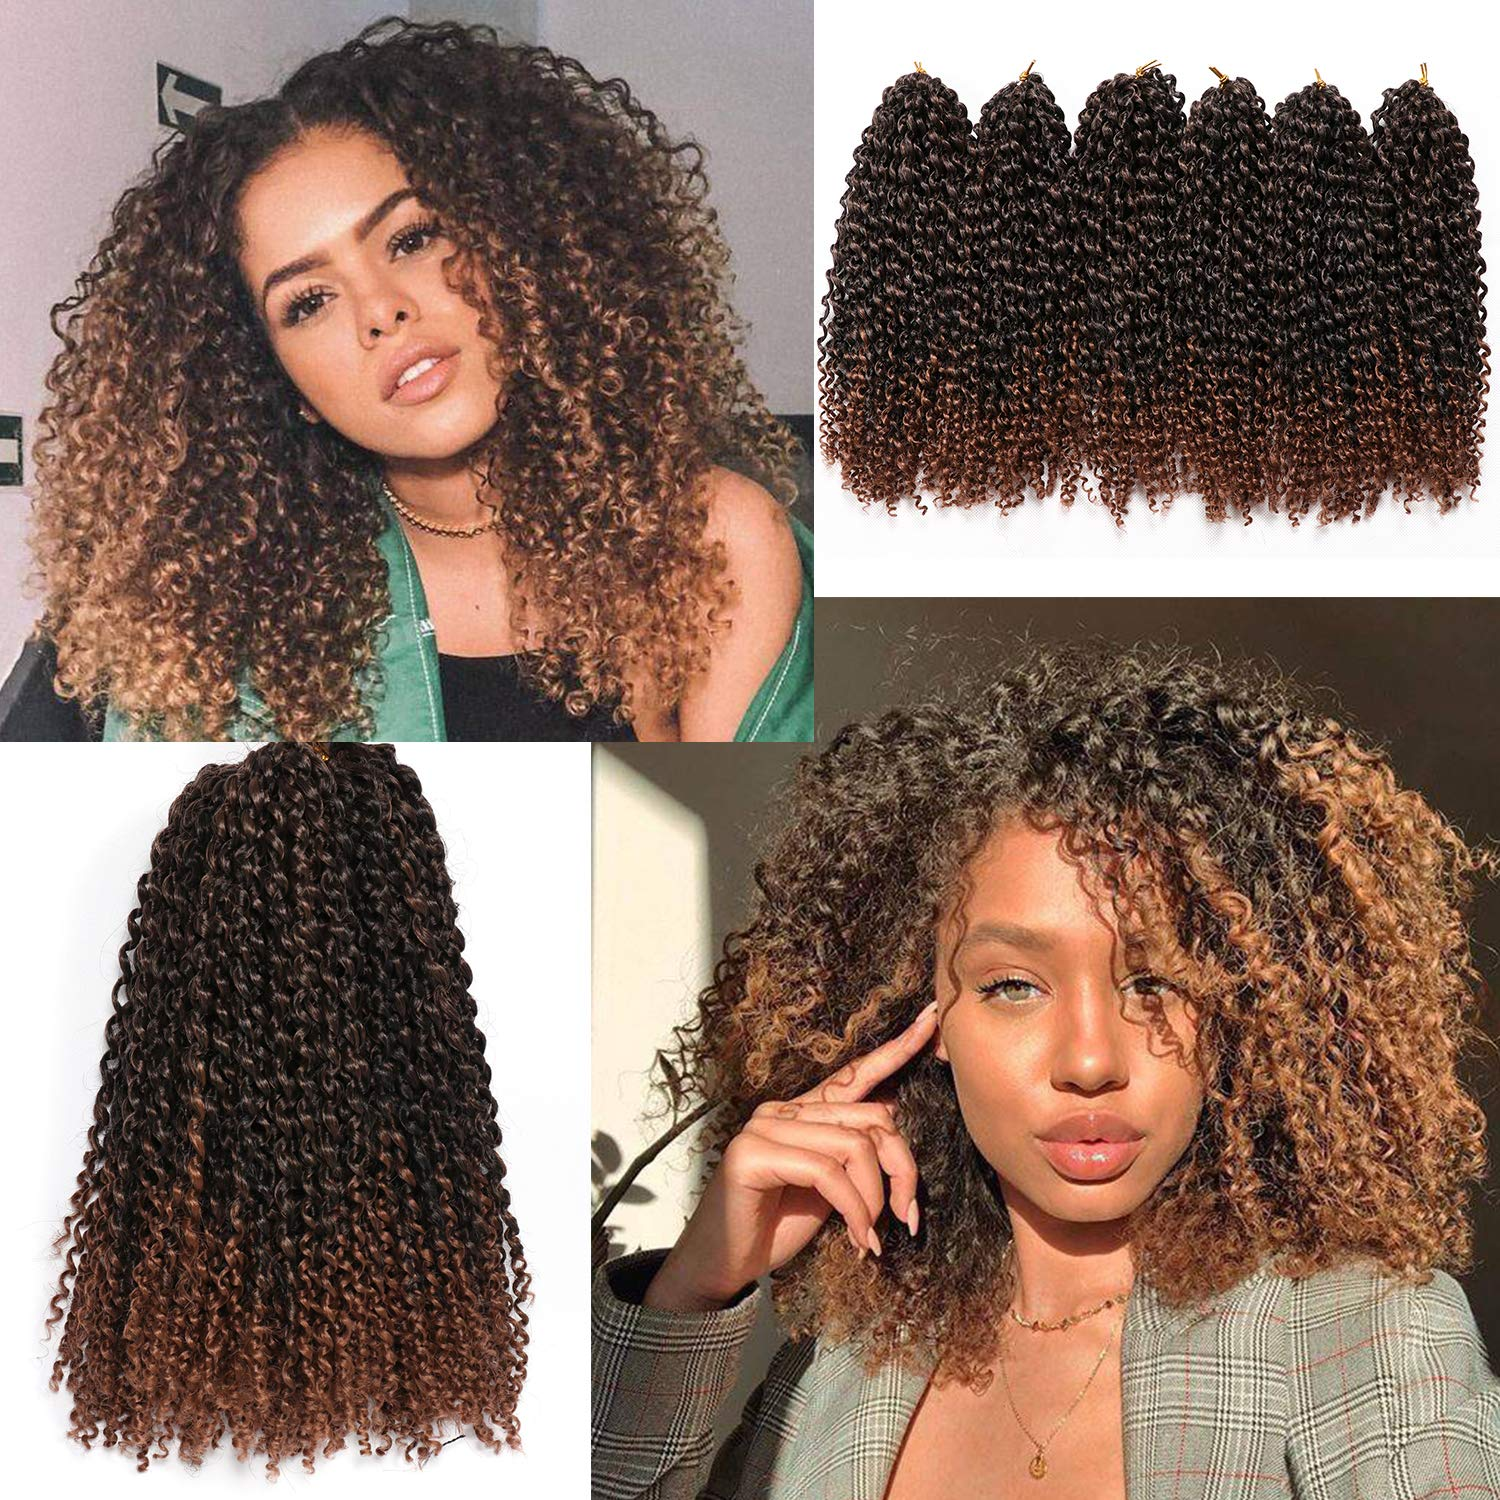 Amazon Com 12 Inch Marlybob Crochet Hair 6 Small Bundles Kinky Twist Crochet Hair Crochet Braids Jerry Curly Crochet Hair Extensions Kinky Curly Crochet Hair Ombre Synthetic Braiding Hair 1b 30 Beauty